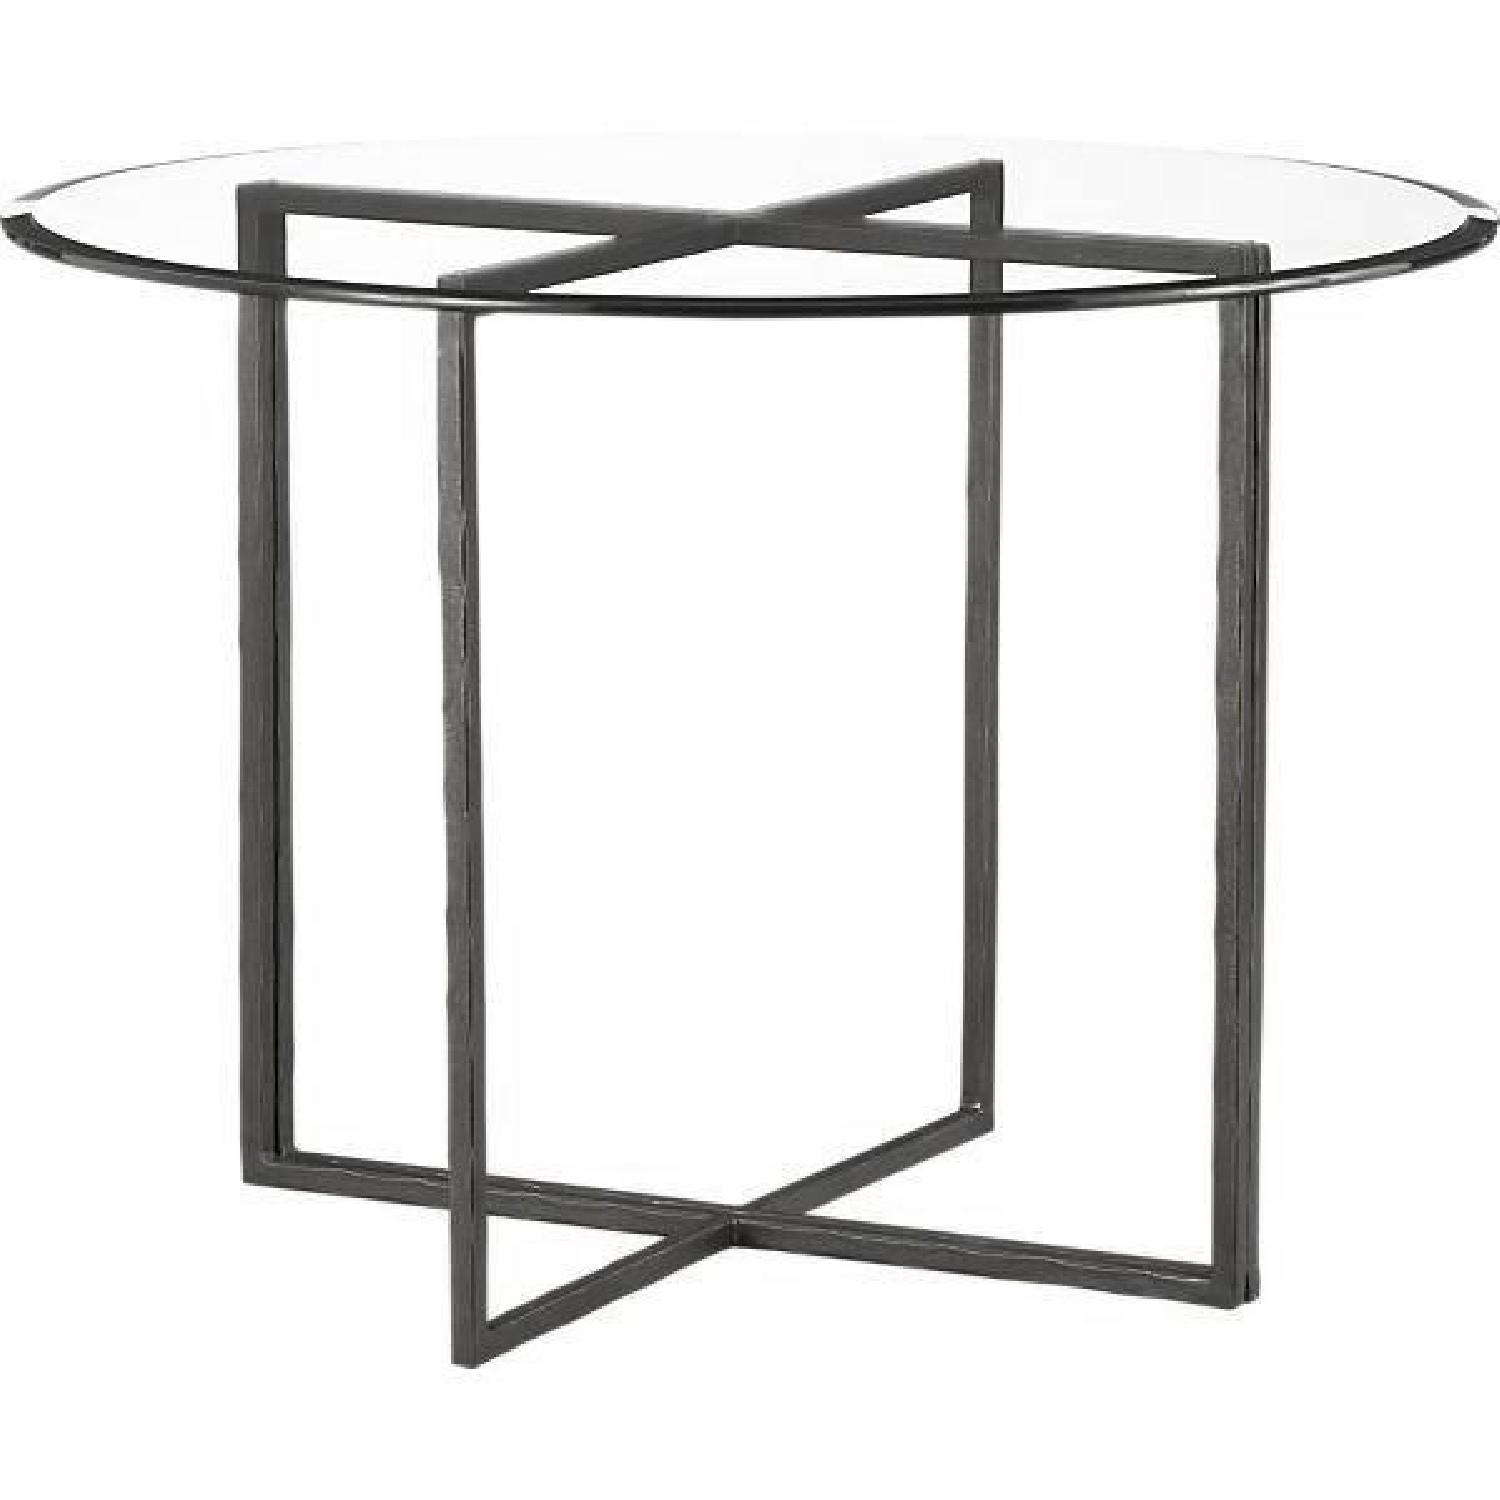 Crate & Barrel Glass Dining Table w/ 4 Chairs